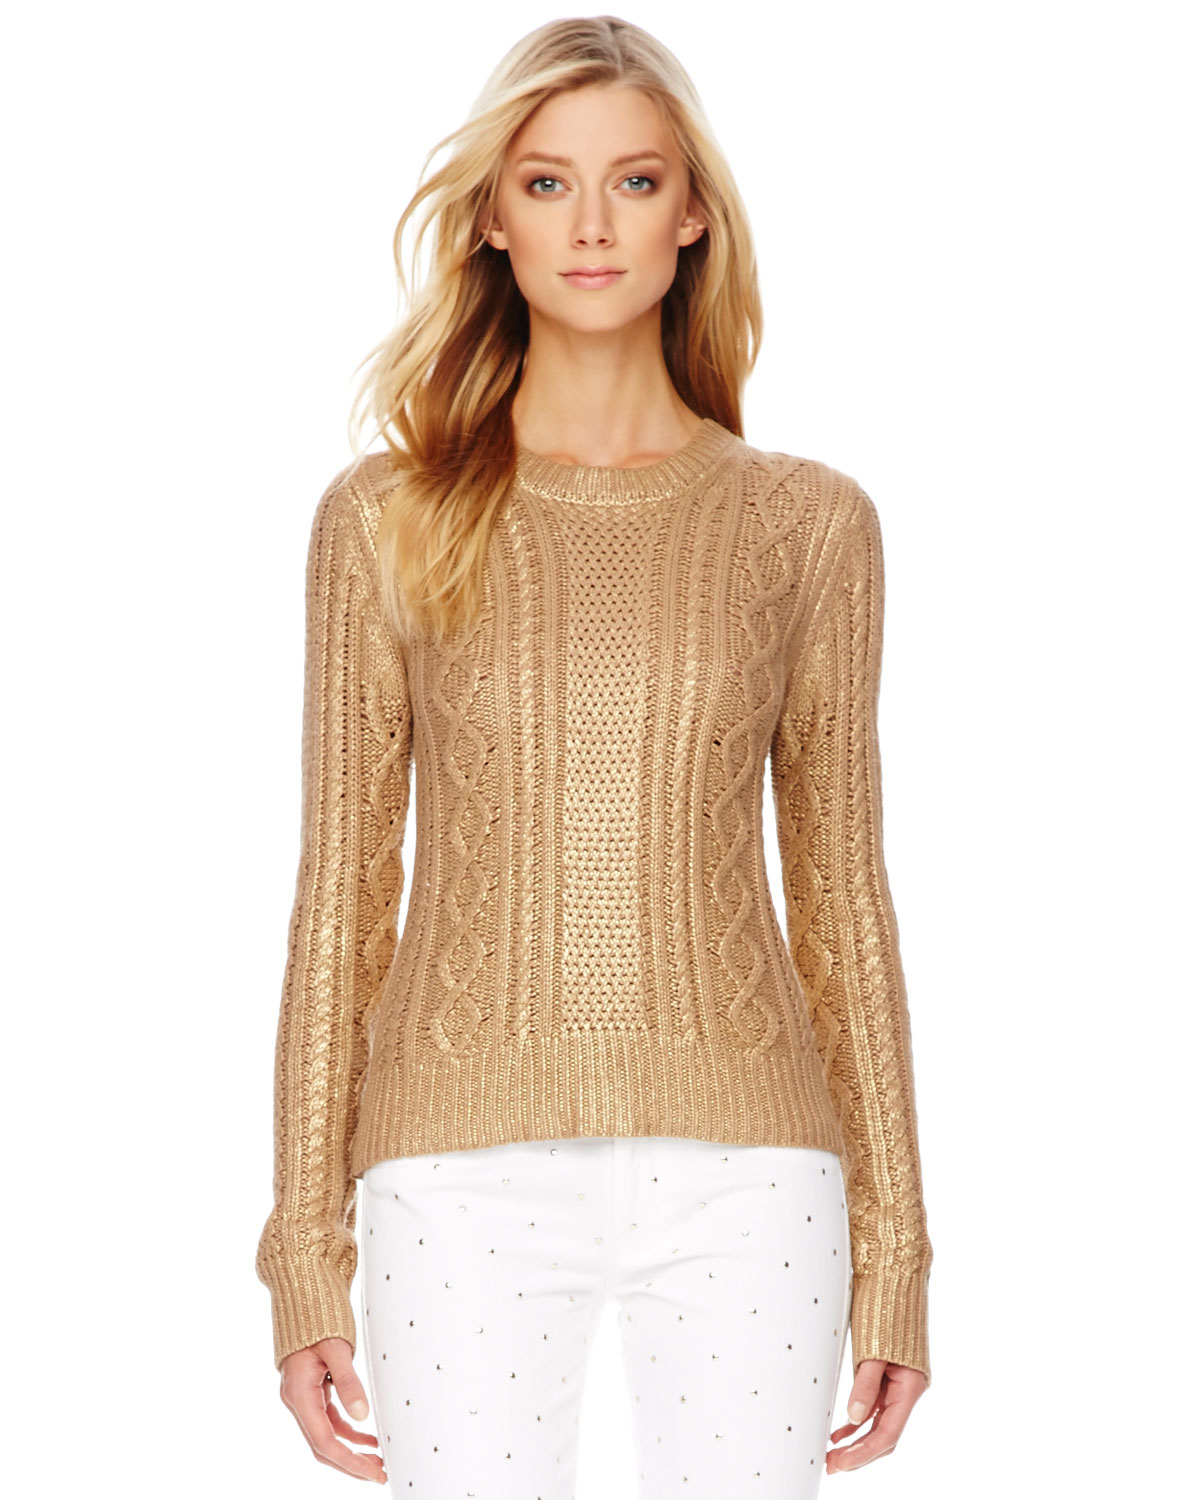 15121f1647 Lyst - Michael Kors Metallic Cable Knit Sweater in Metallic